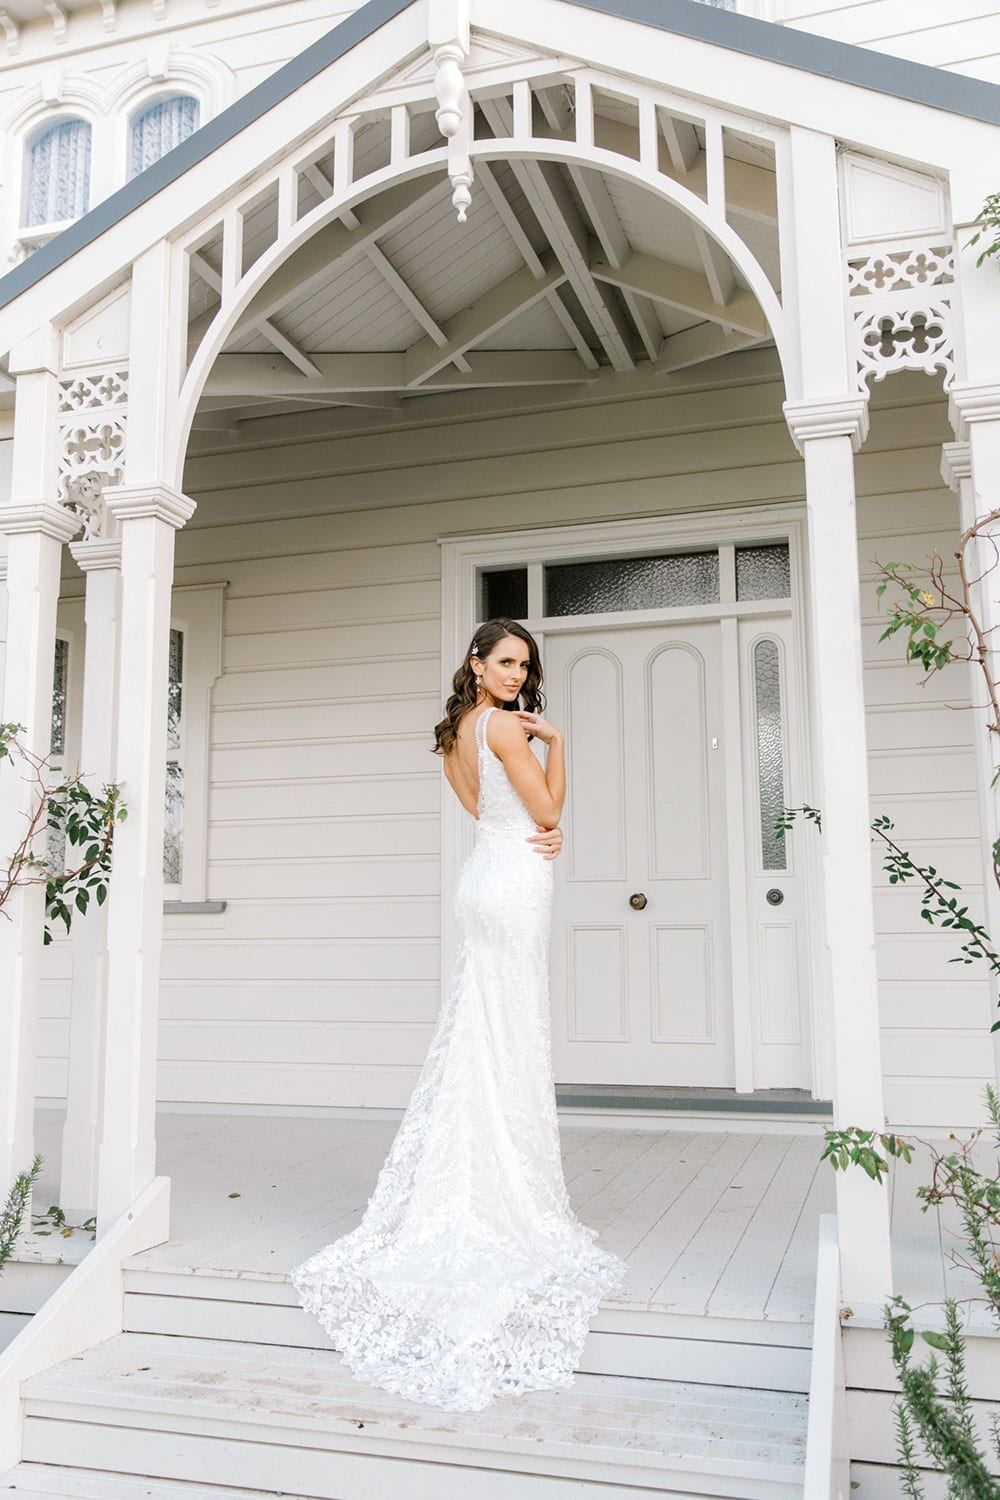 Model wearing Vinka Design Camille Wedding Dress, a Timeless Fitted Wedding Gown on the veranda of a wooden building with an arch facing away train displayed